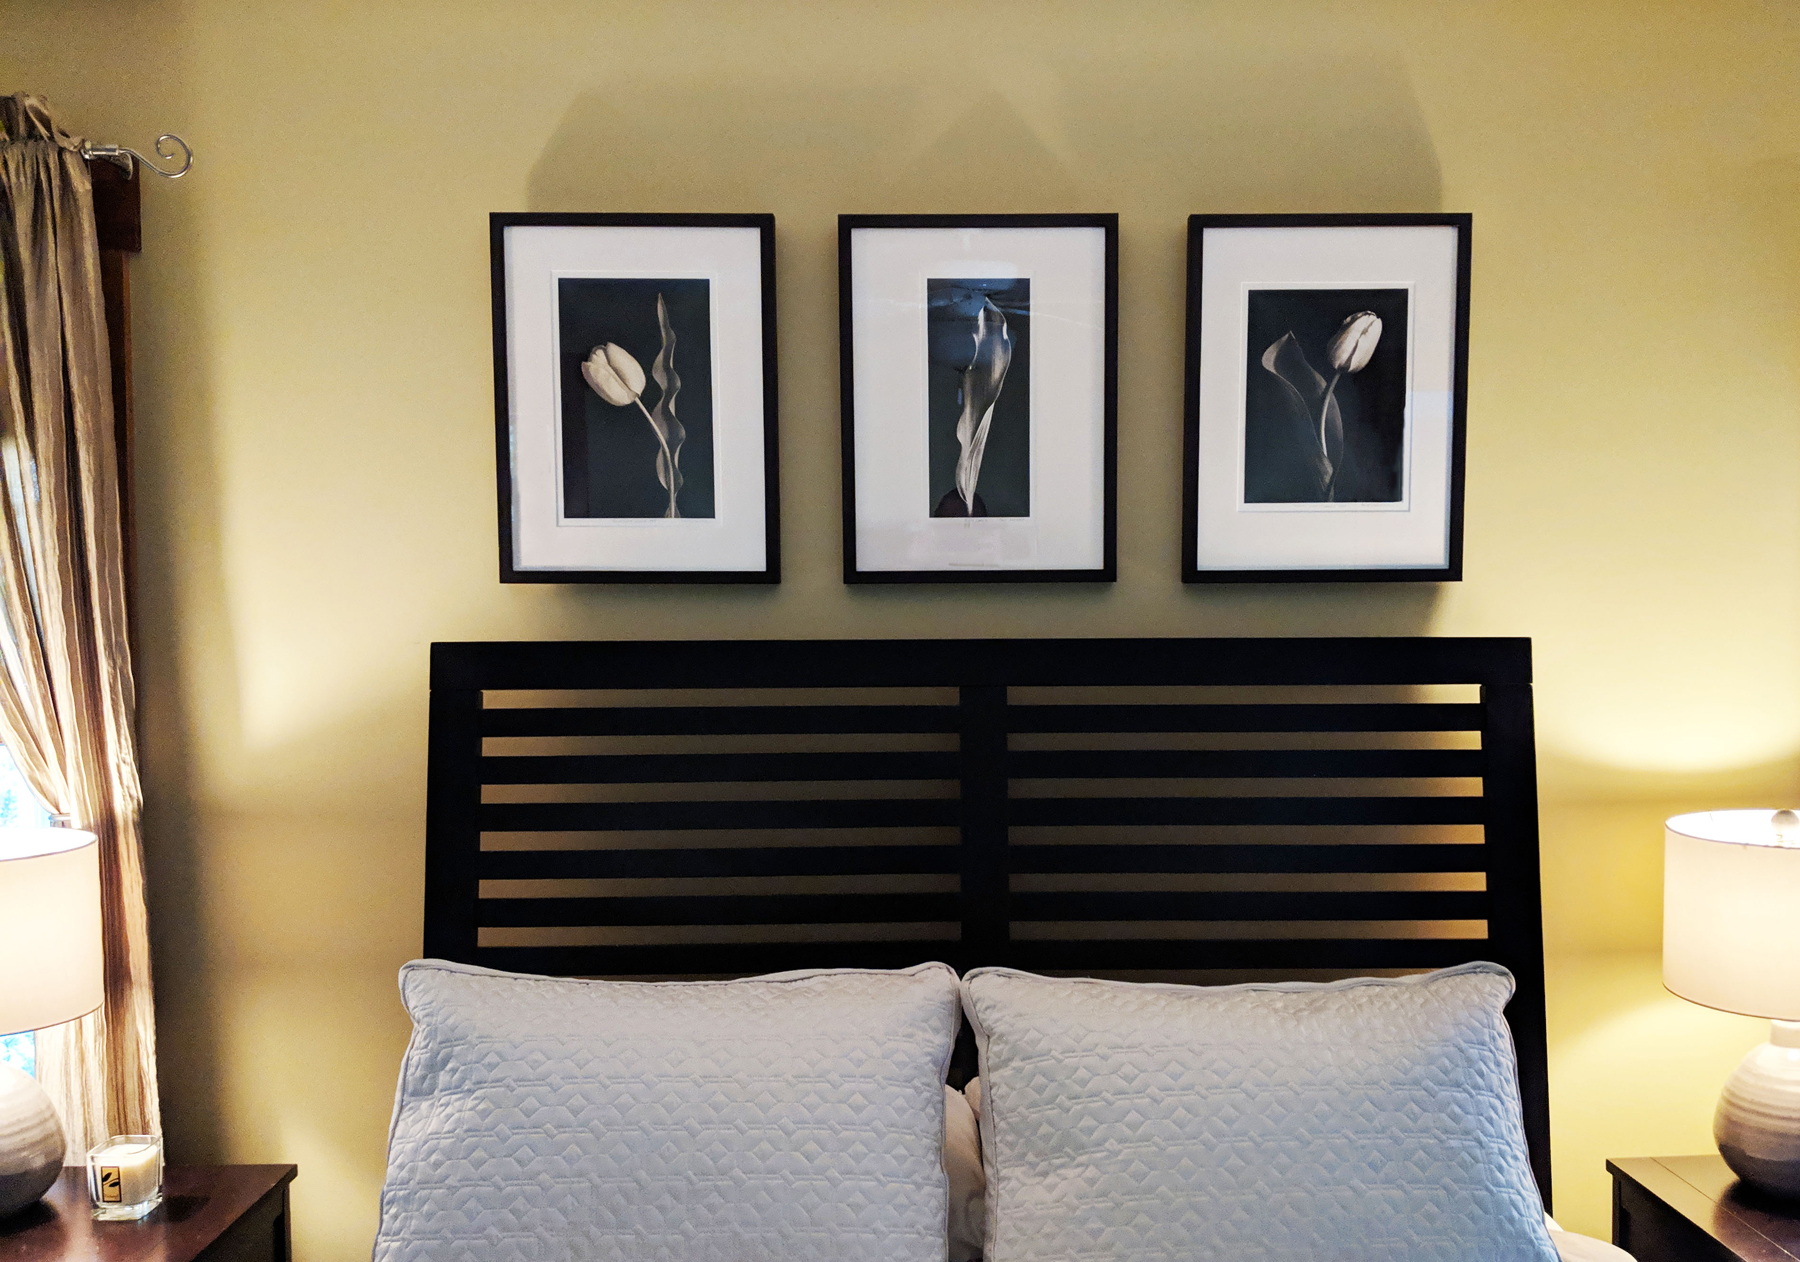 These three palladium prints were purchased for display as a focal point in a bedroom of one of my collectors.